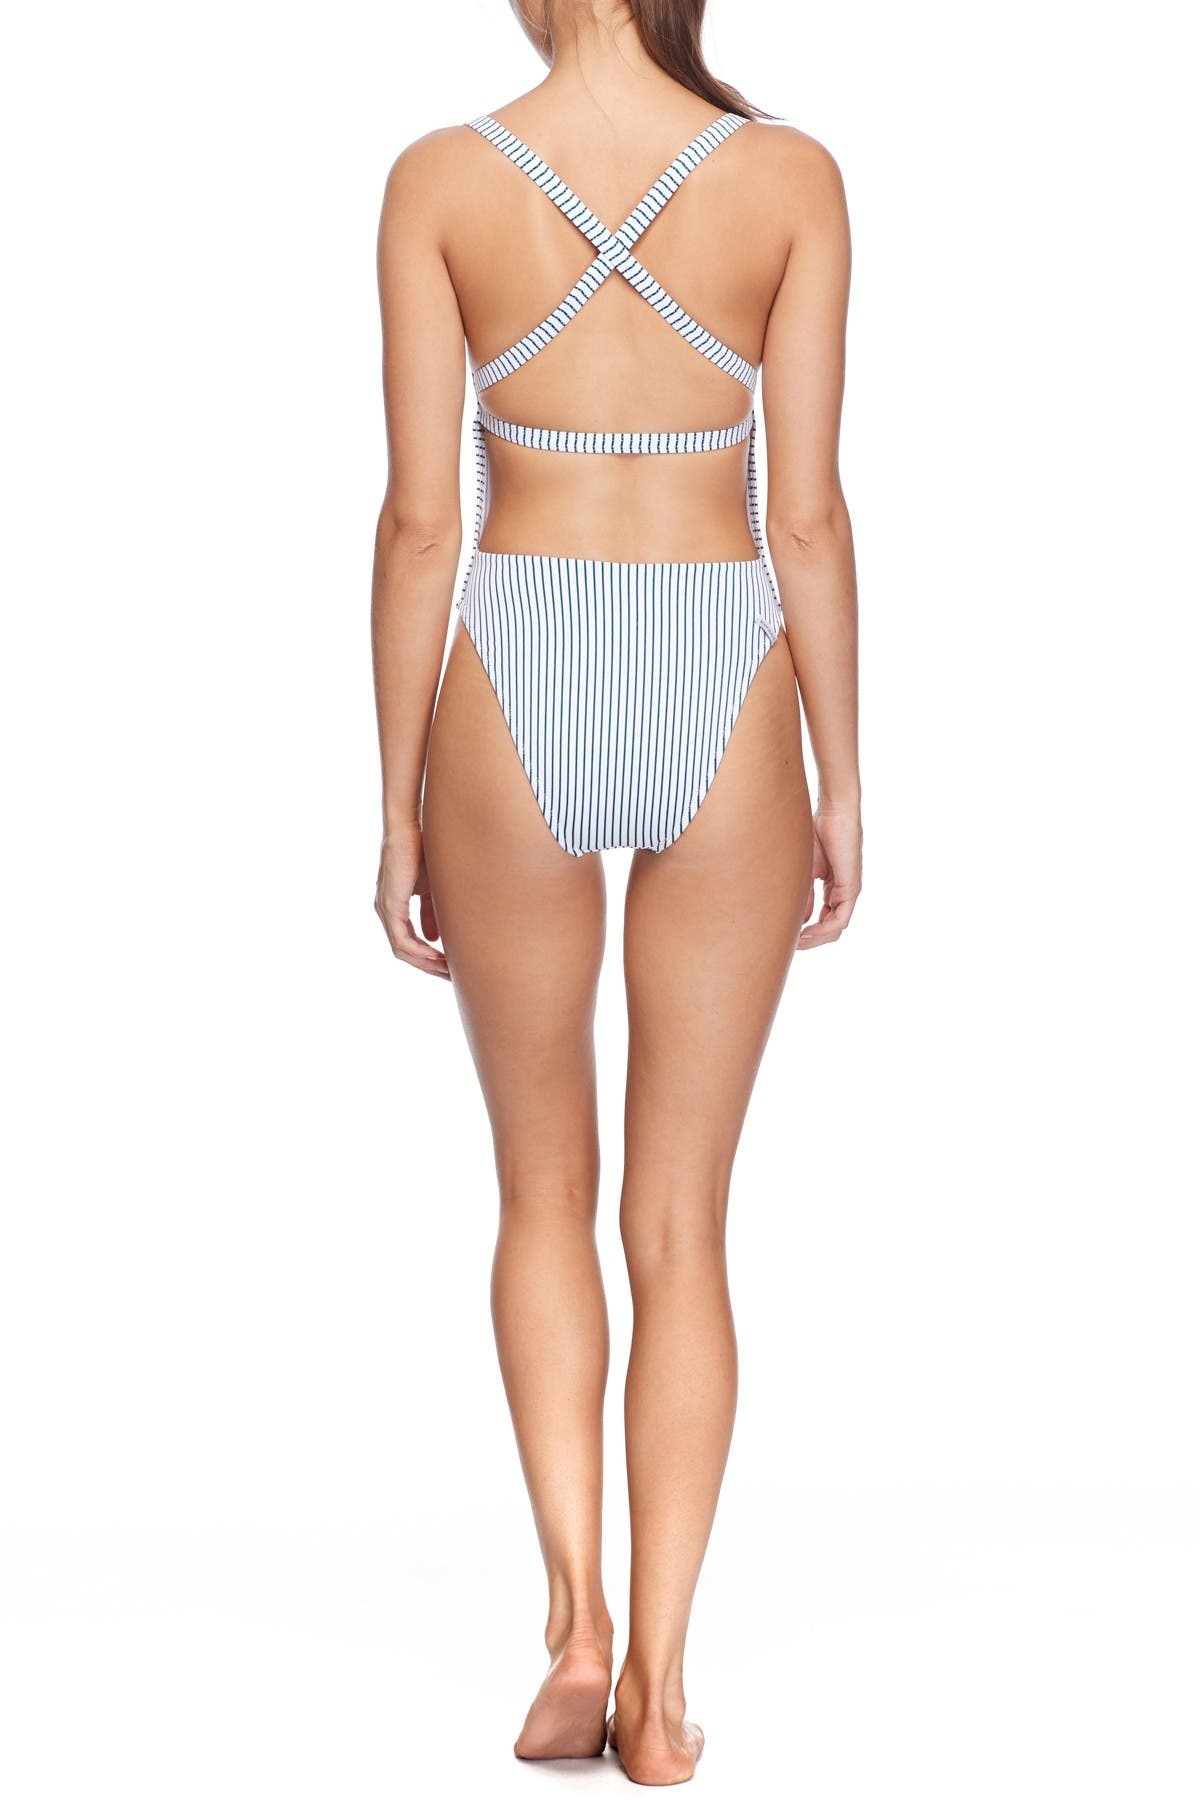 Body Glove Womens Electra One Piece Swimsuit with Strappy Back Detail